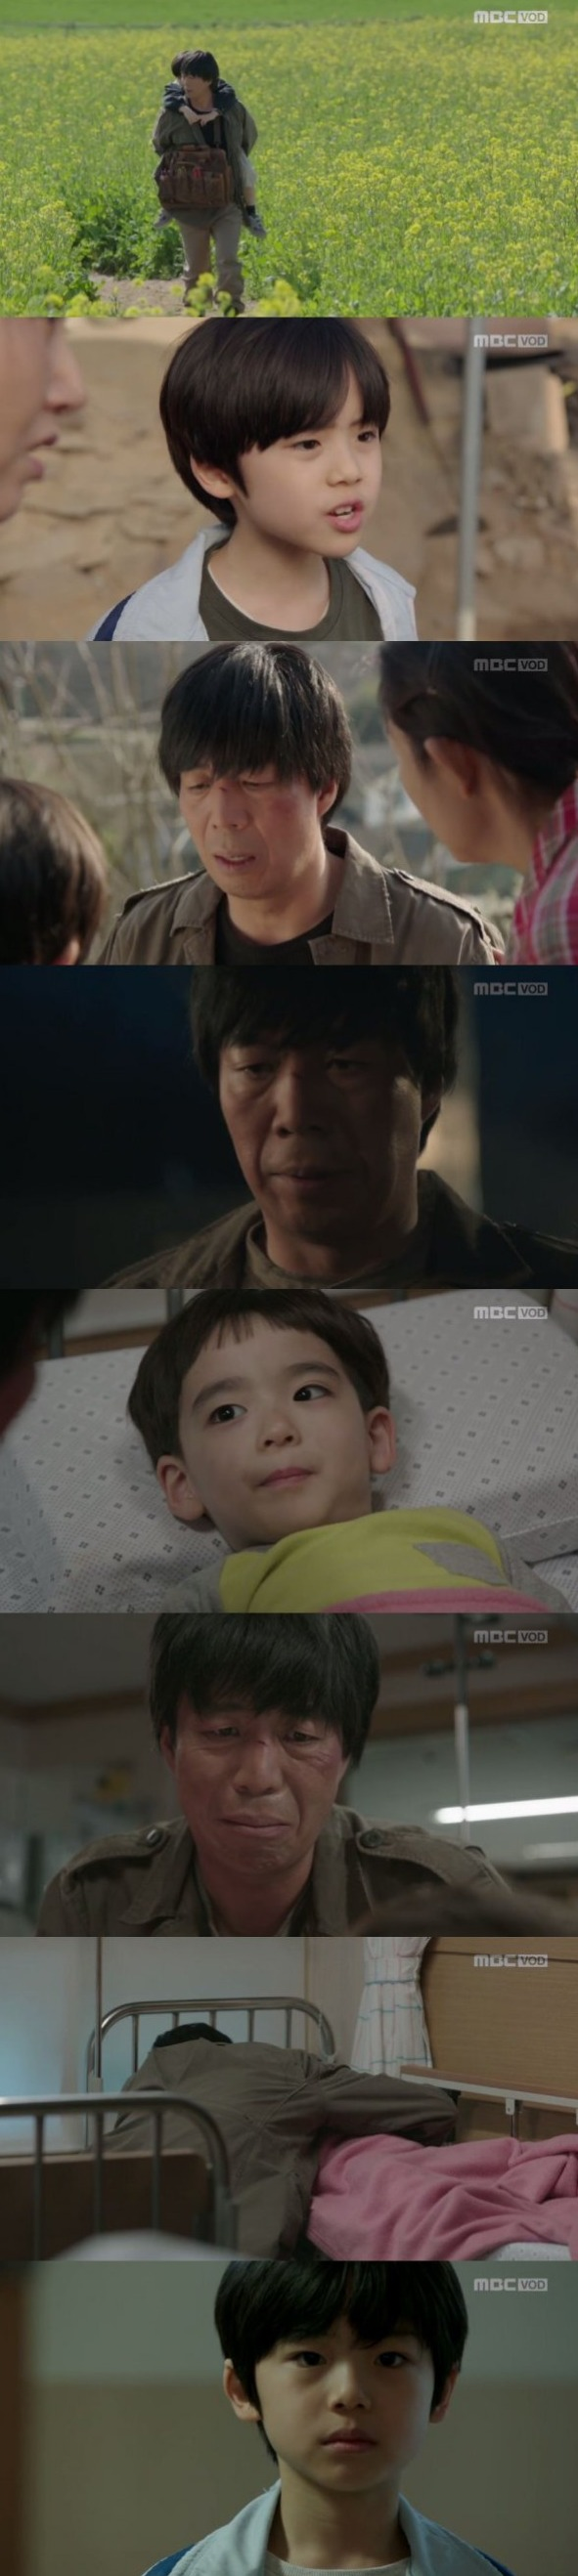 [Spoiler] Added episodes 1 and 2 captures for the Korean drama 'Bad Thief, Good Thief'